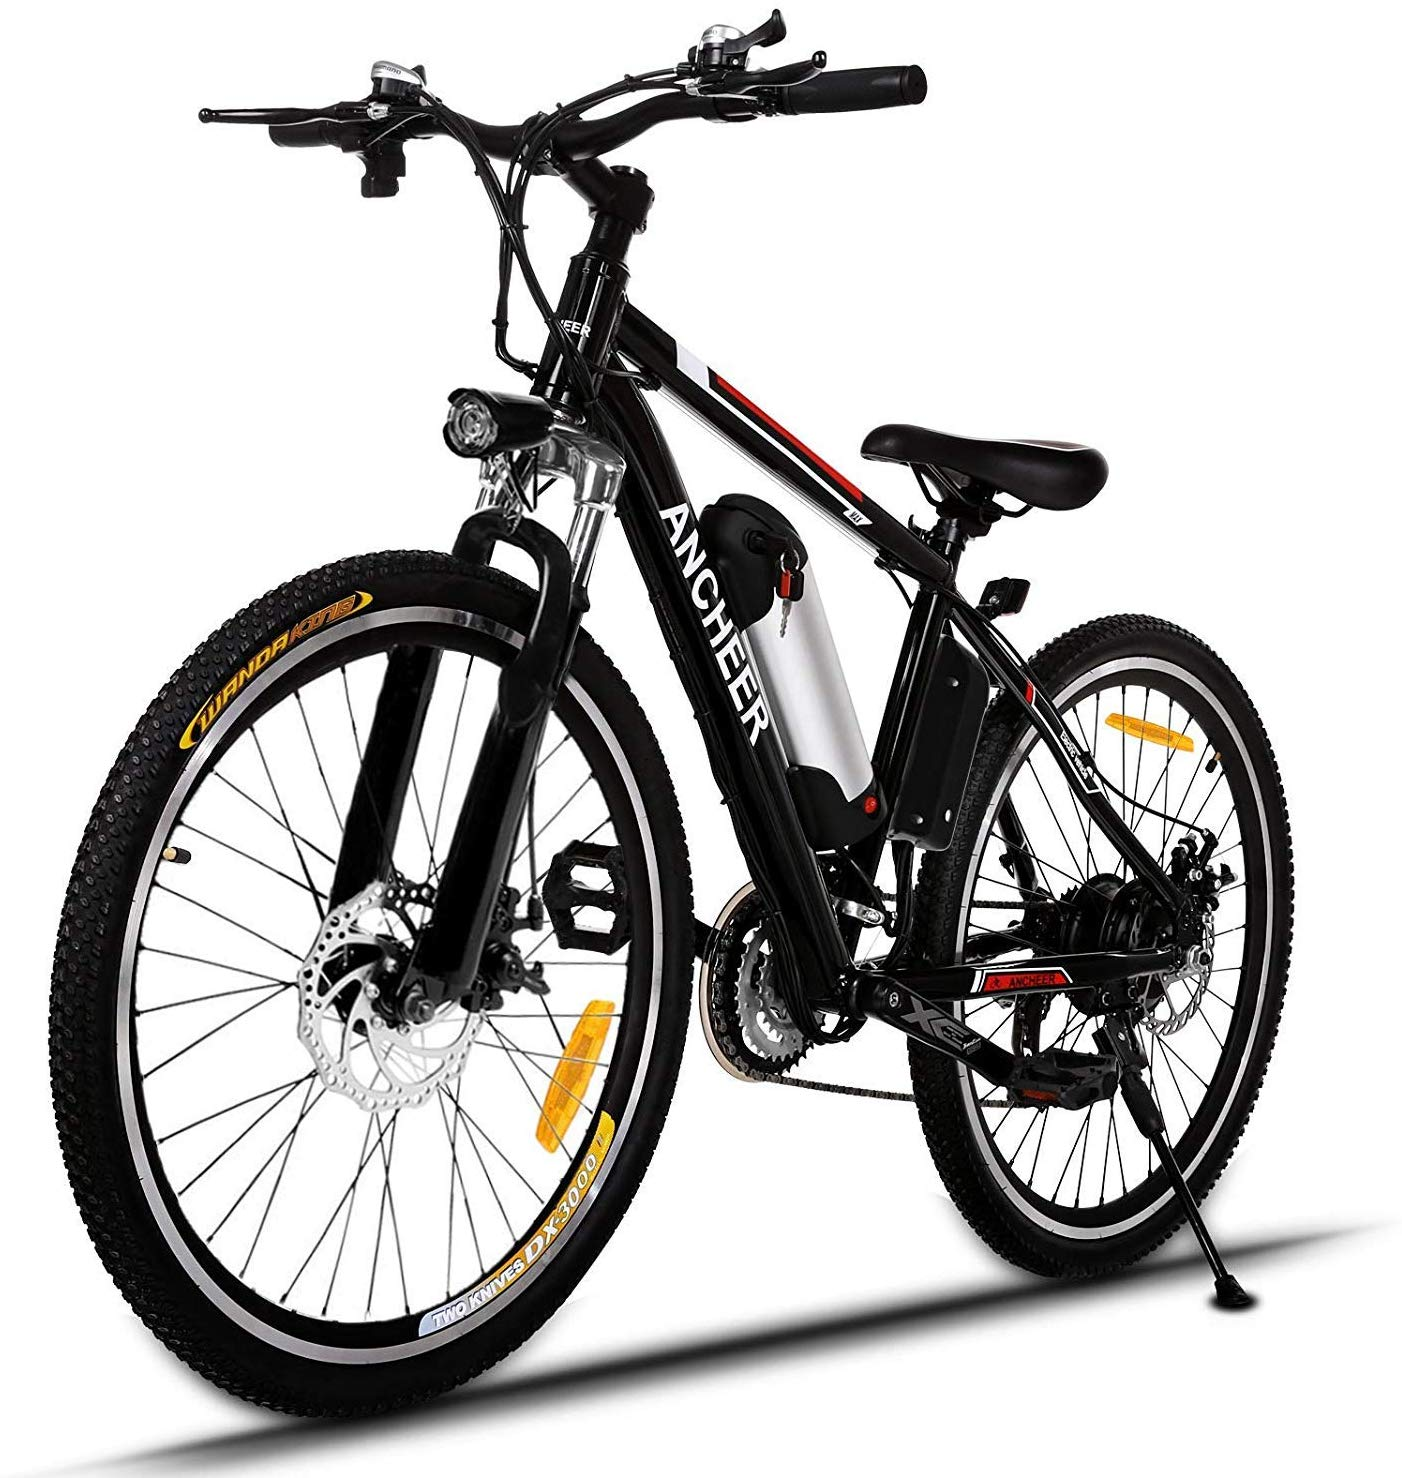 ANCHEER 500W 250W Adult Electric Mountain Bike